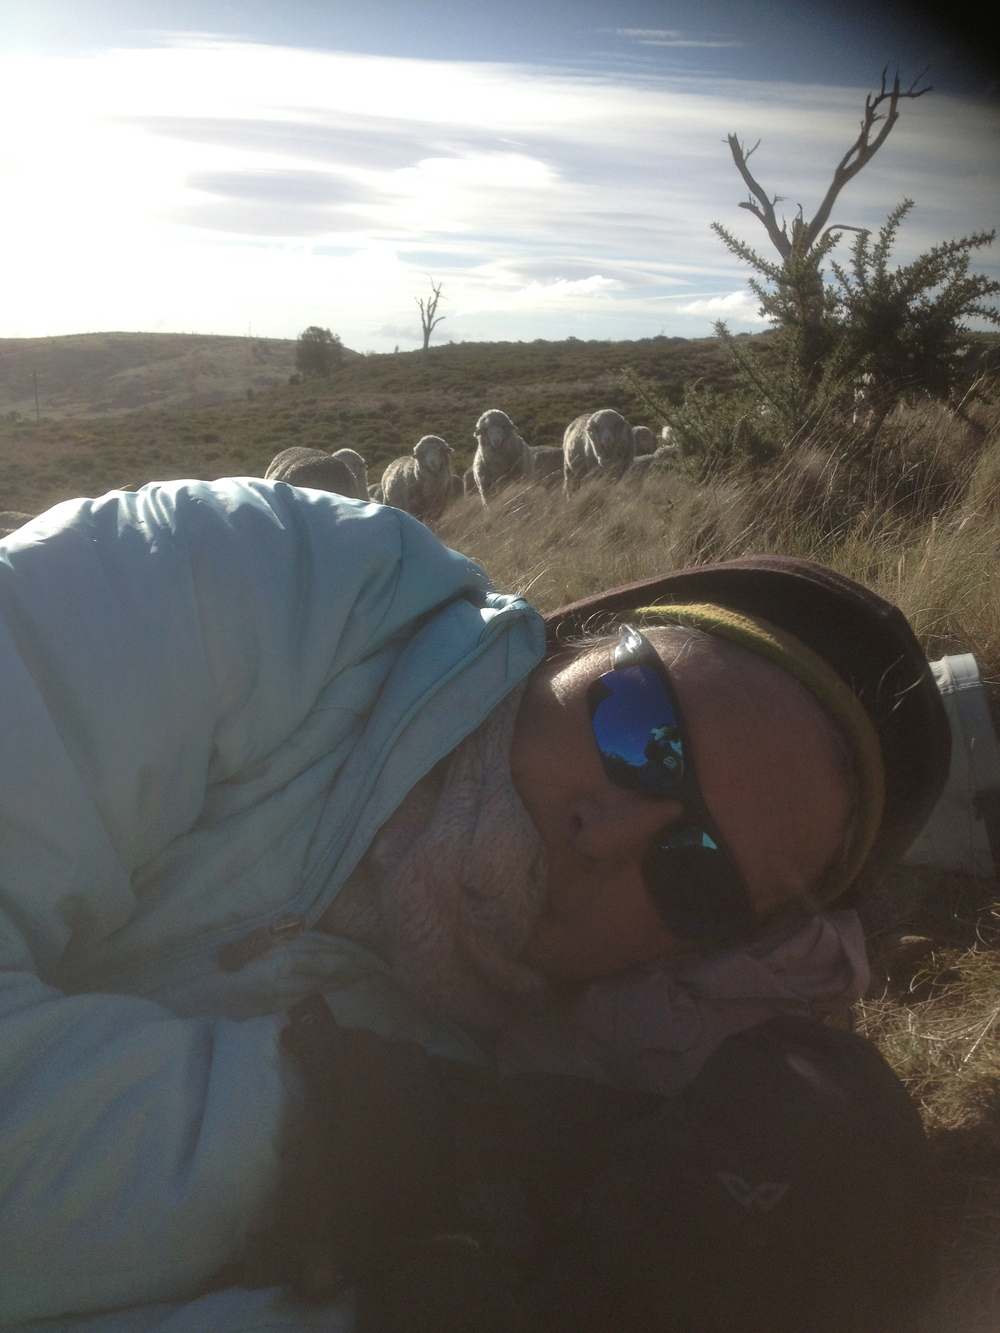 Me having mid-day rest, while the sheep are thinking of moving on. (another Lyn photo, taken without my permission :)